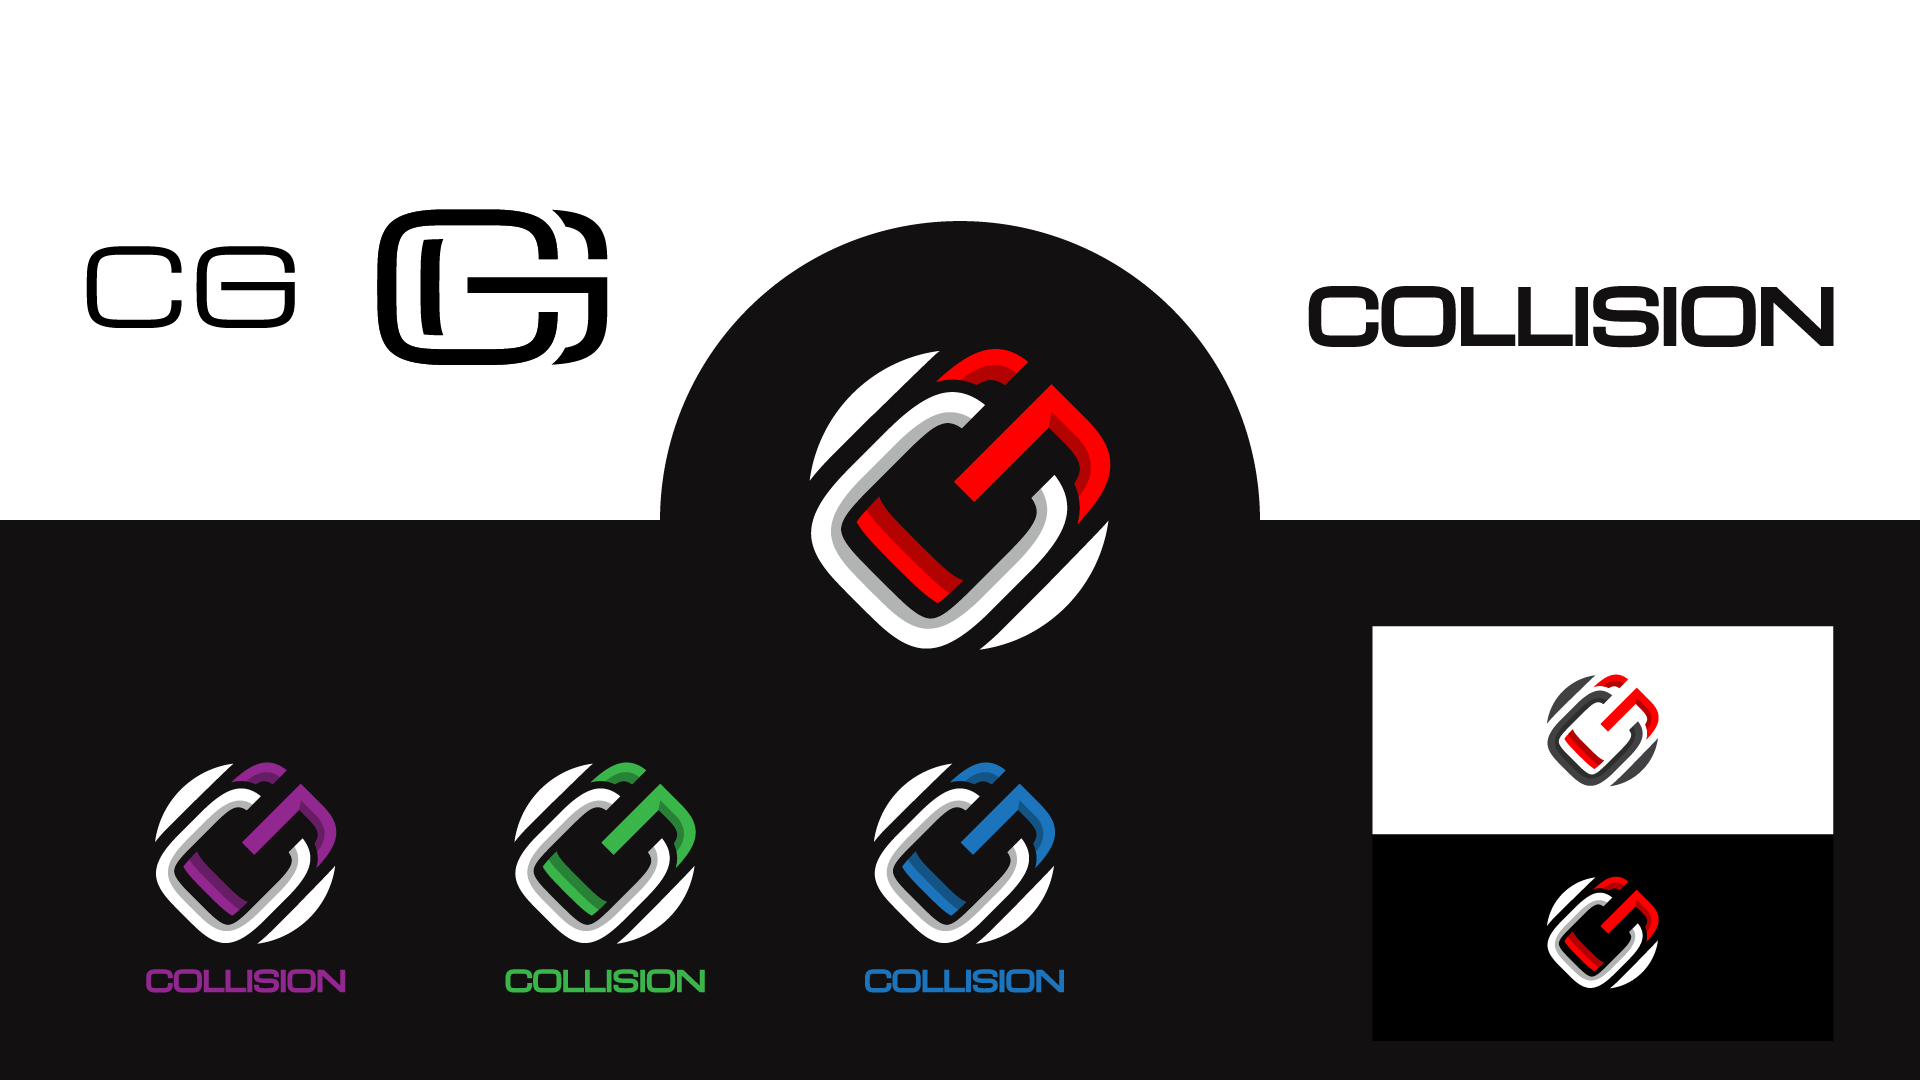 Collision Gaming | CG